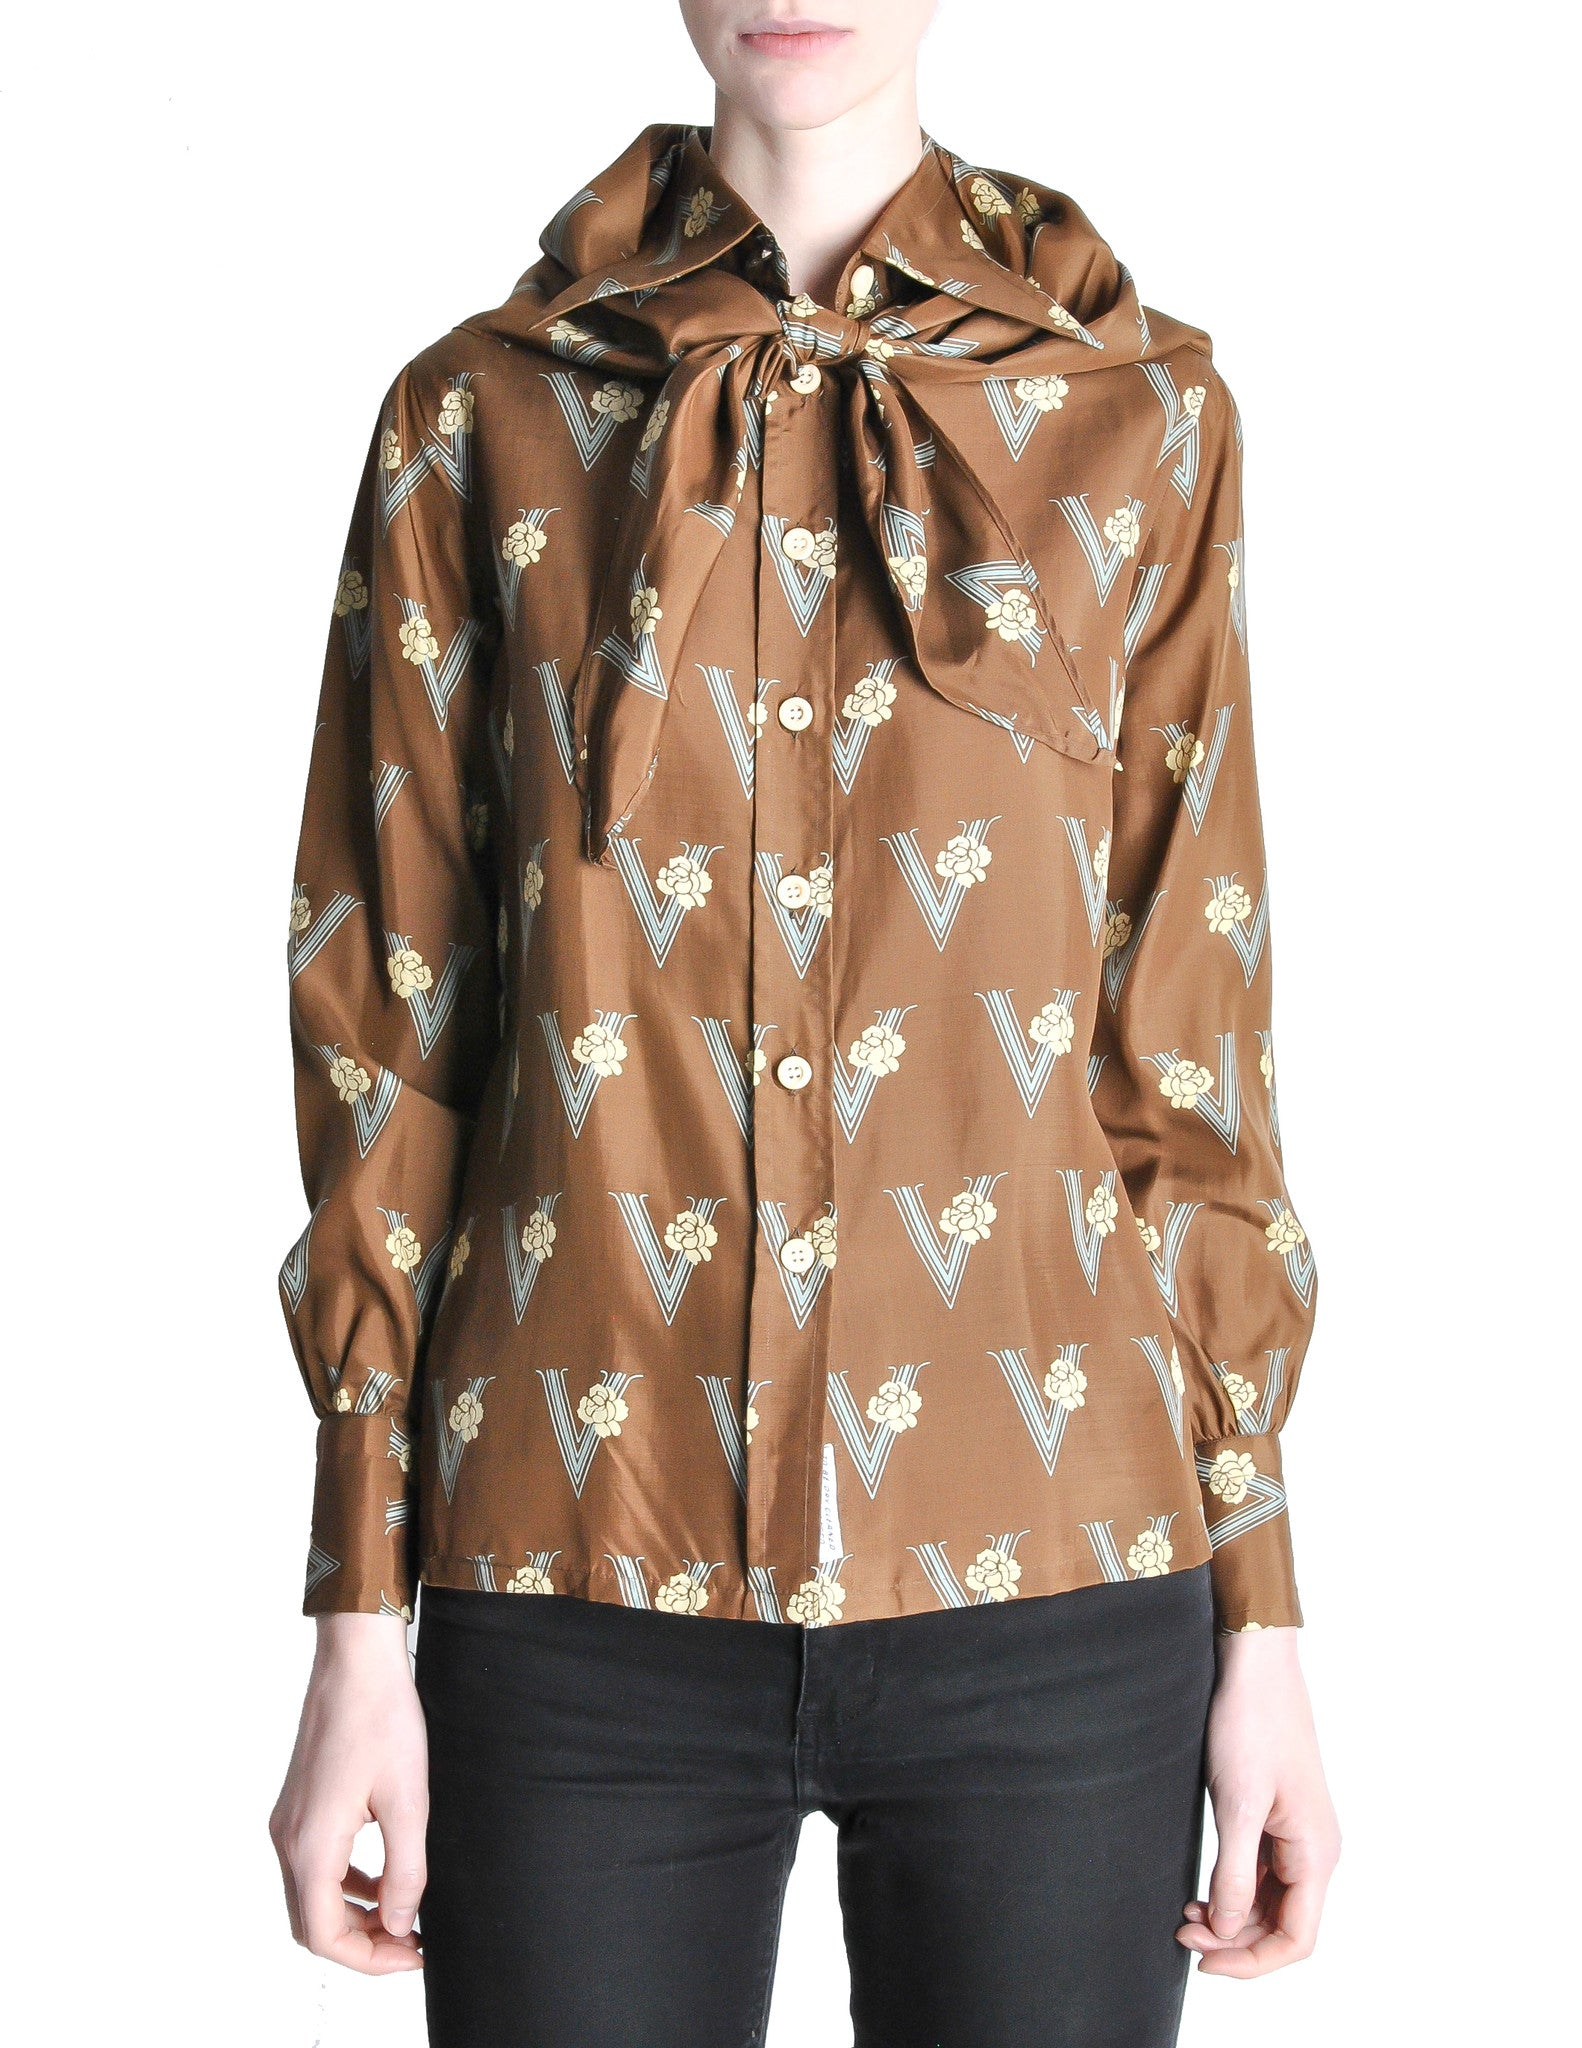 Valentino Vintage V Monogram Print Silk Shirt with Scarf - Amarcord Vintage Fashion  - 1